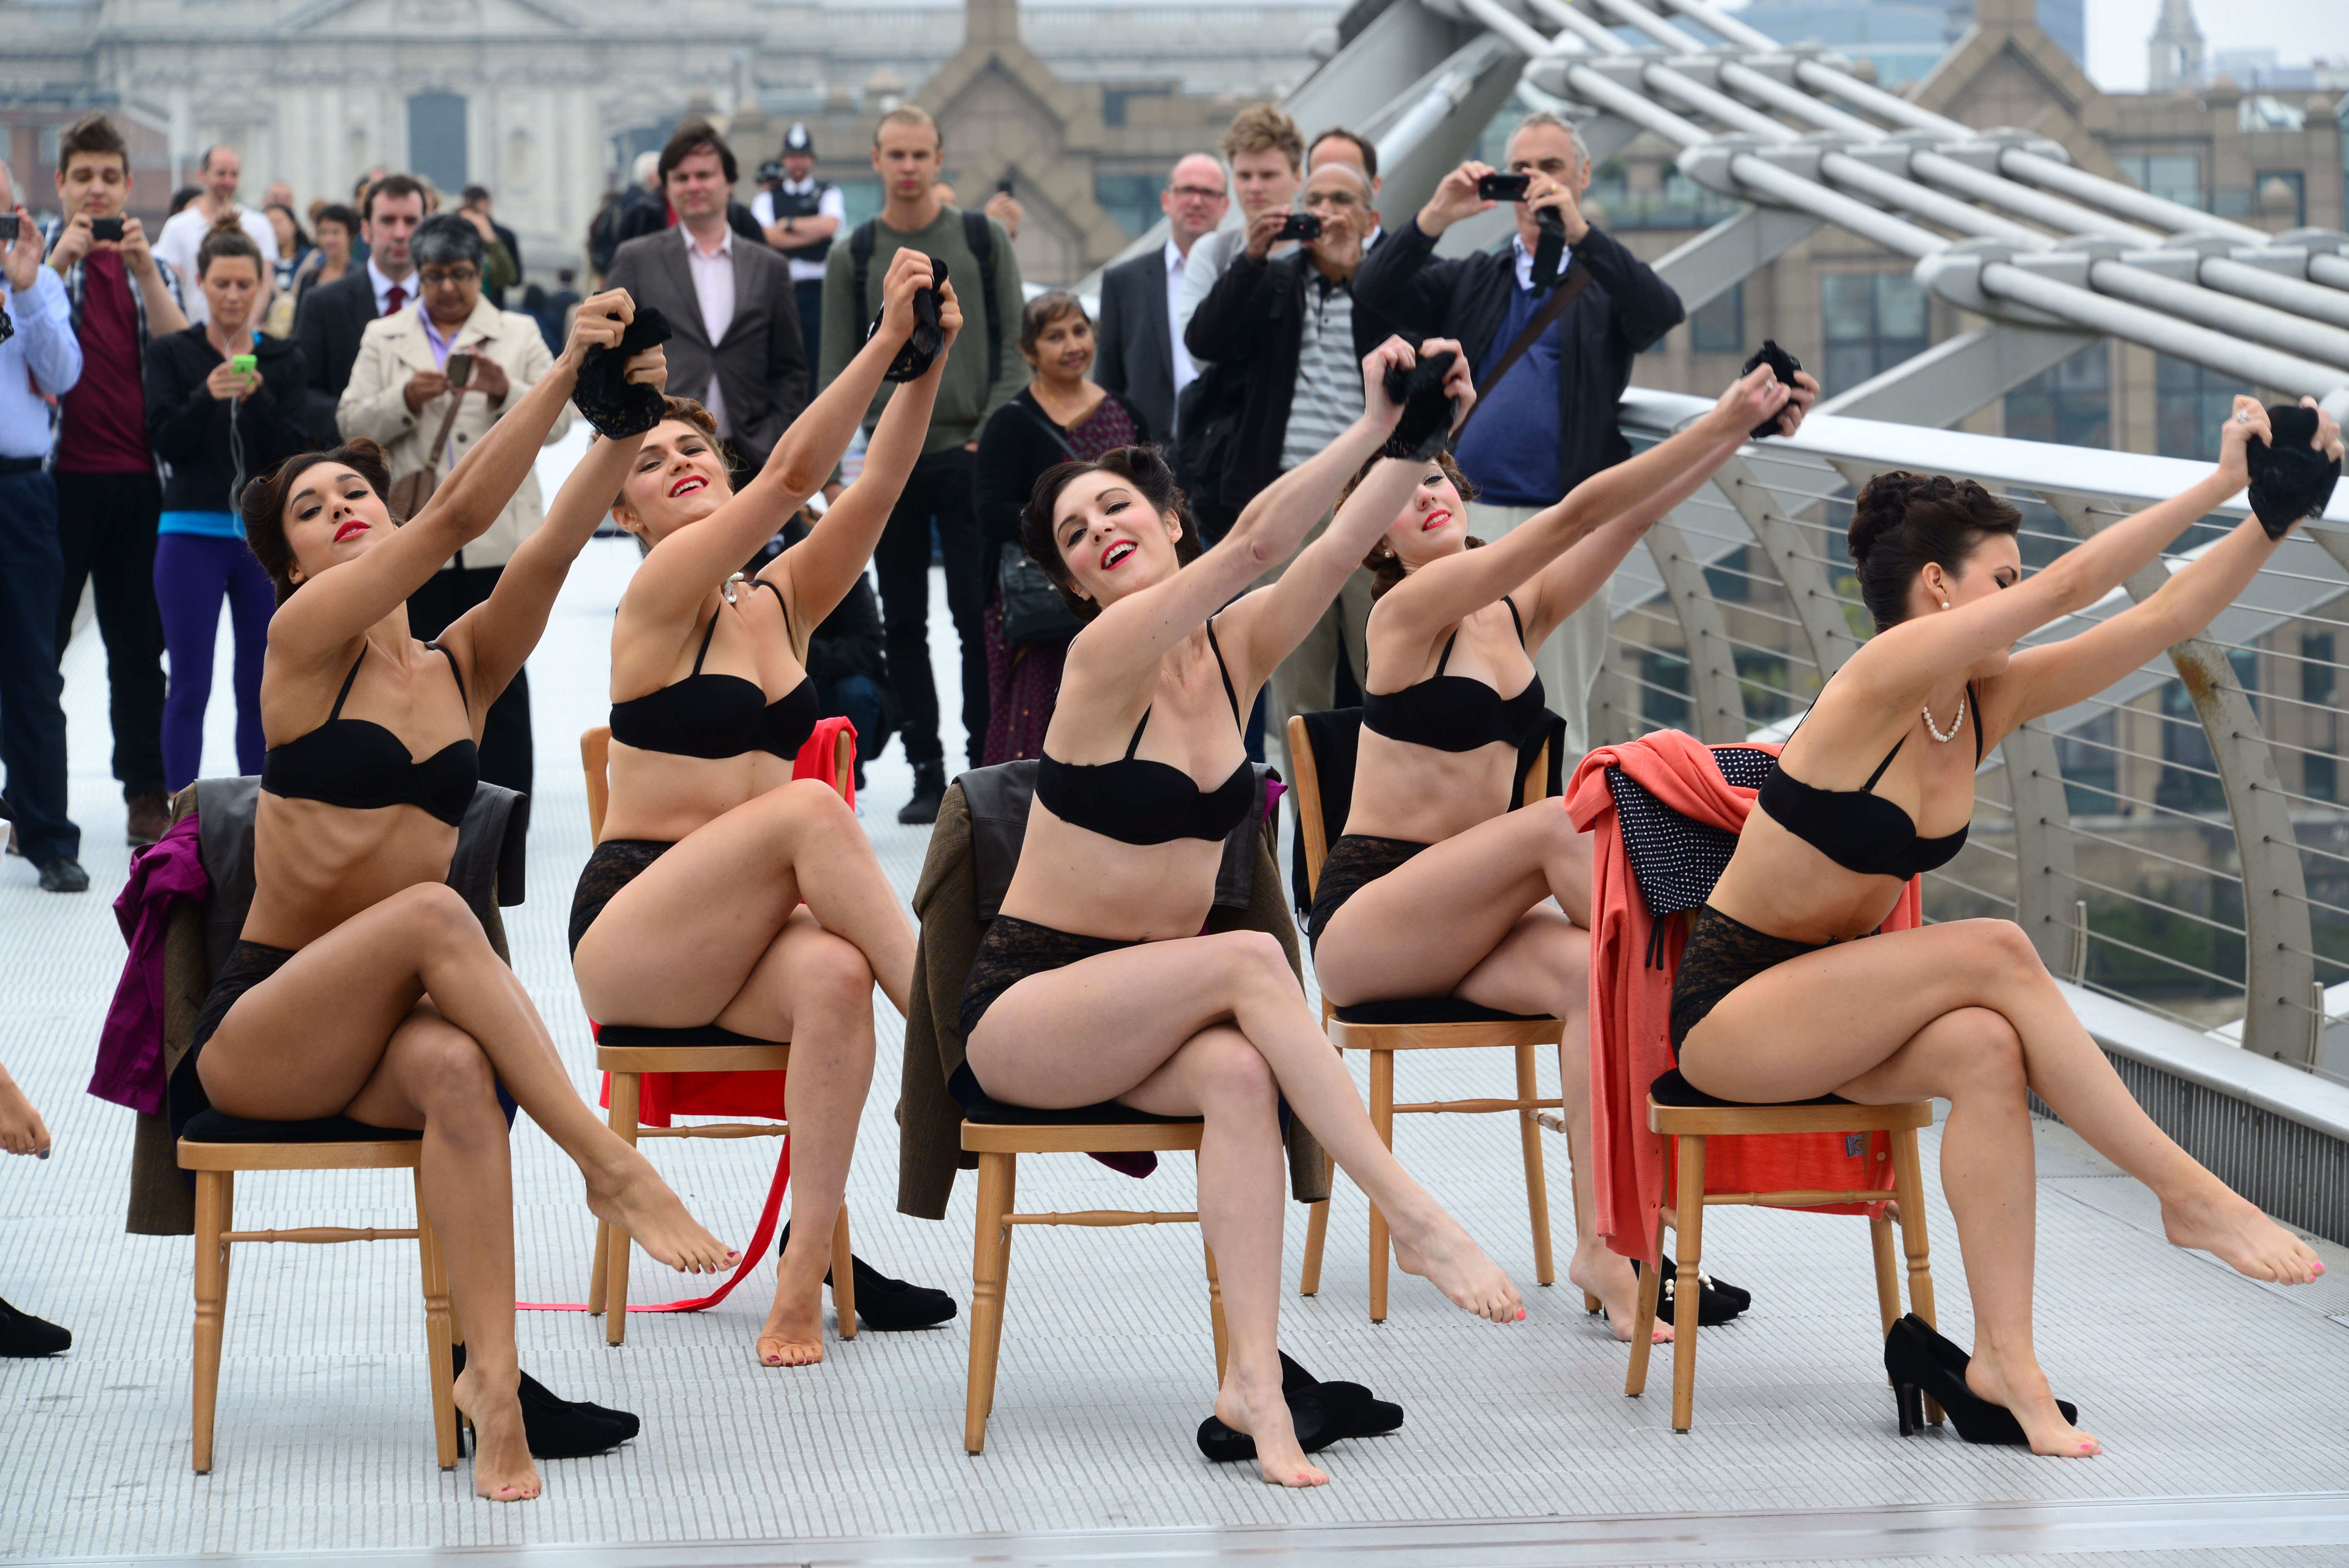 A group of dancers in underwear perform a choreagraphed reverse striptease on millennium bridge as members of the public watch on.